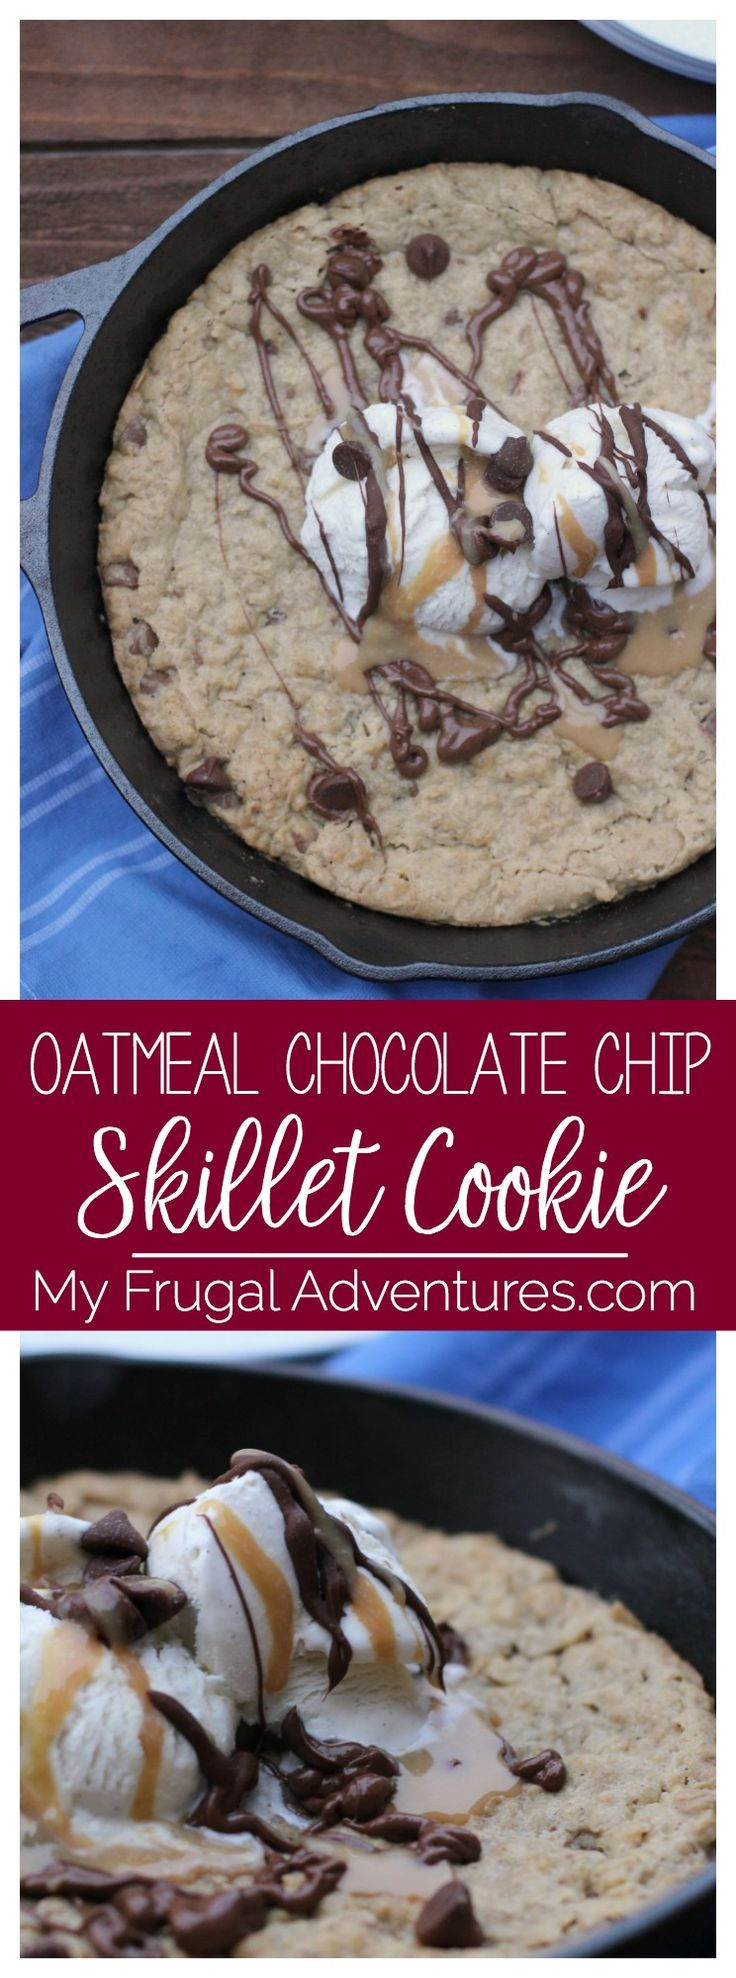 "Oatmeal Chocolate Chip Skillet Cookie- this is soft, chewy and delicious!  Homemade version of the famous pizookie that comes together in just minutes.  Celebrate ""Oatober"" and 140 years Quaker oats have been in business by trying this amazing superfood in a variety of your recipes. #oatober #ic #ad"